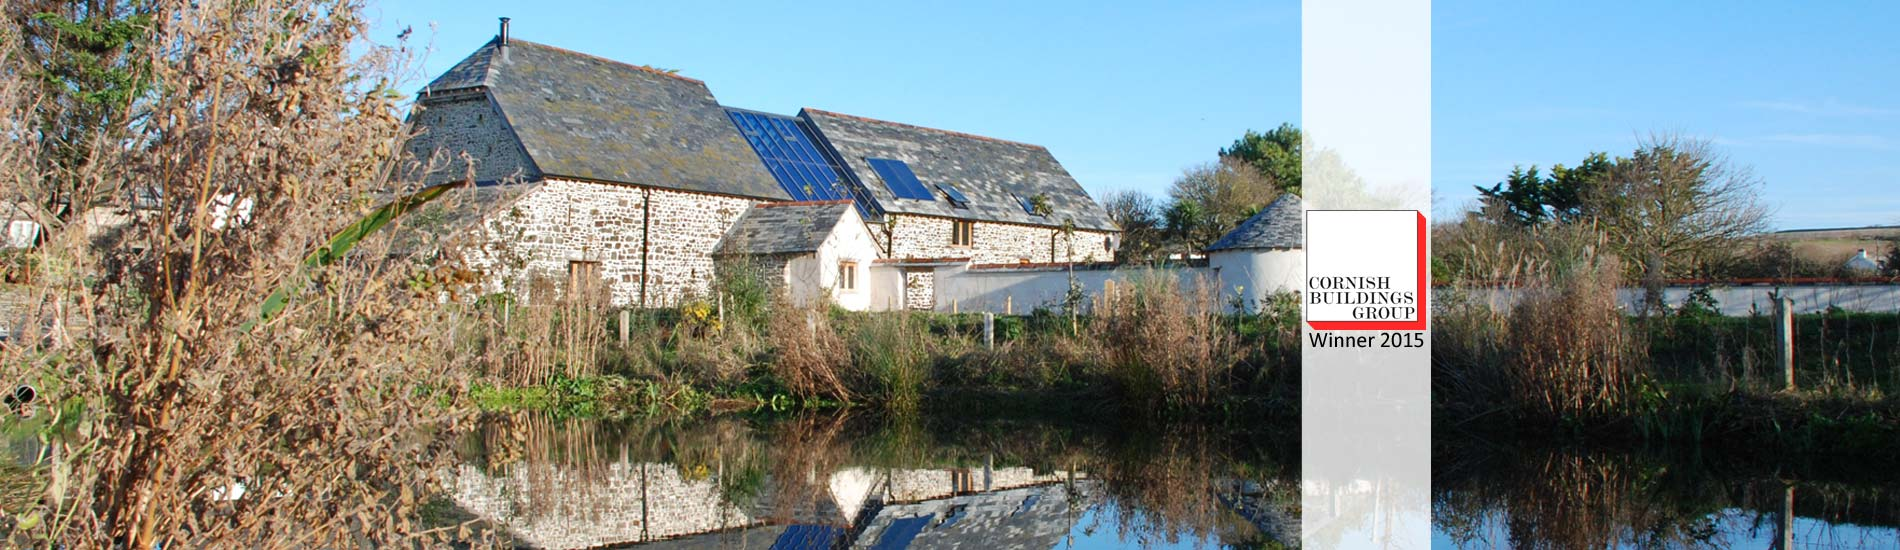 Maer Barn Bude Cornish Buildings Group Award Winner 2015 Architects in Cornwall The Bazeley Partnership